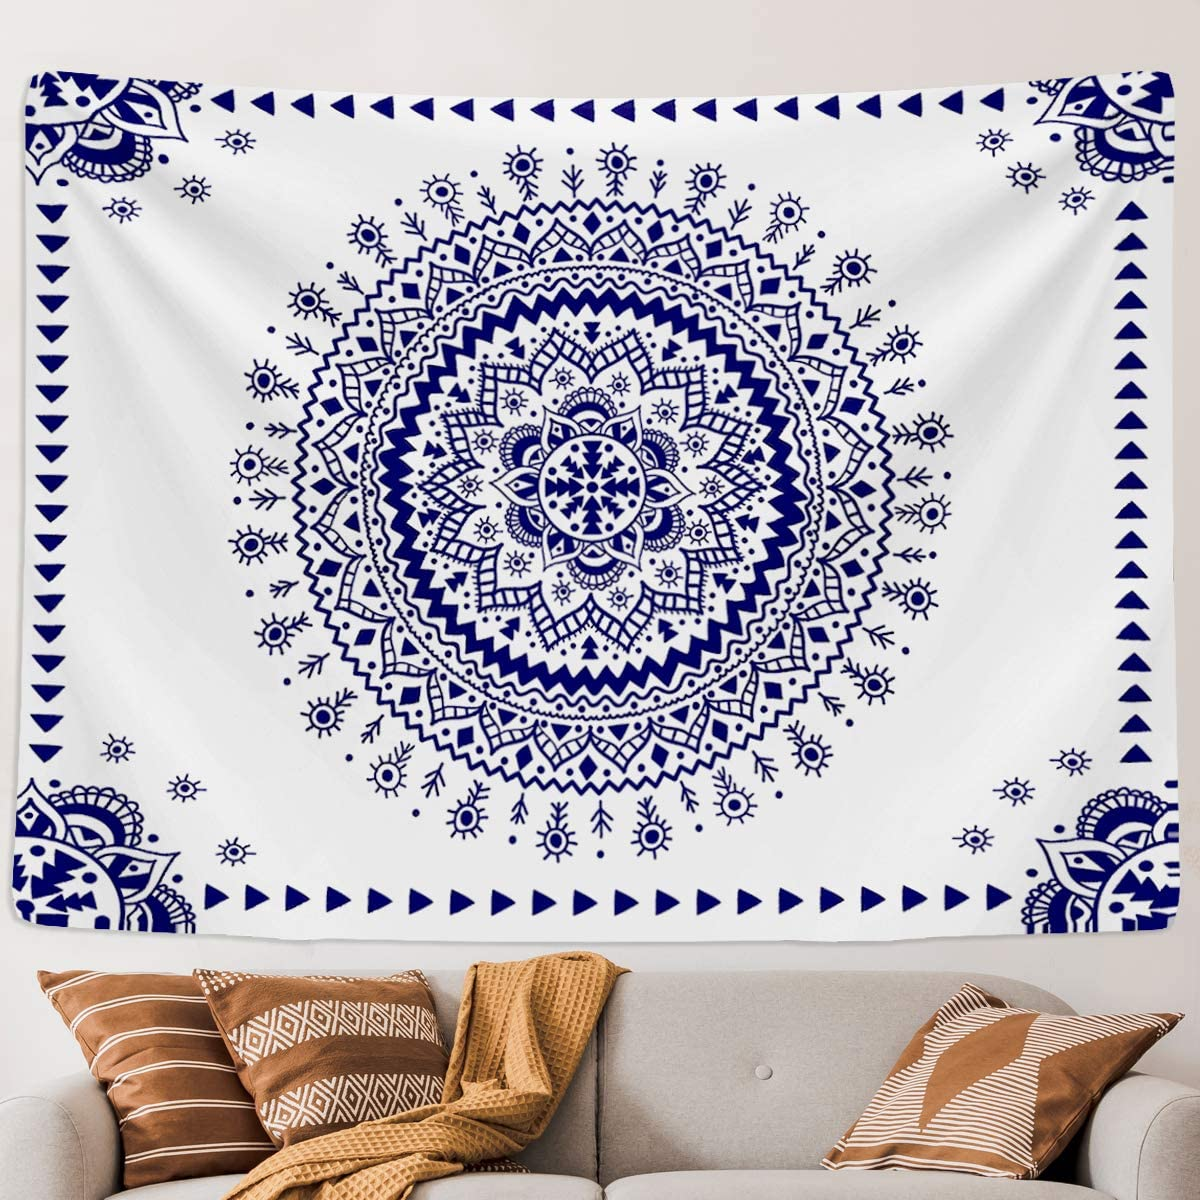 Blue and White Mandala Tapestry Wall Hanging, Indian Bohemian Navy Floral Pattern Home Decor Large Boho Turquoise Medallion Wall Sheet Art for Bedroom Home Dorm Living Room Ceiling with hook